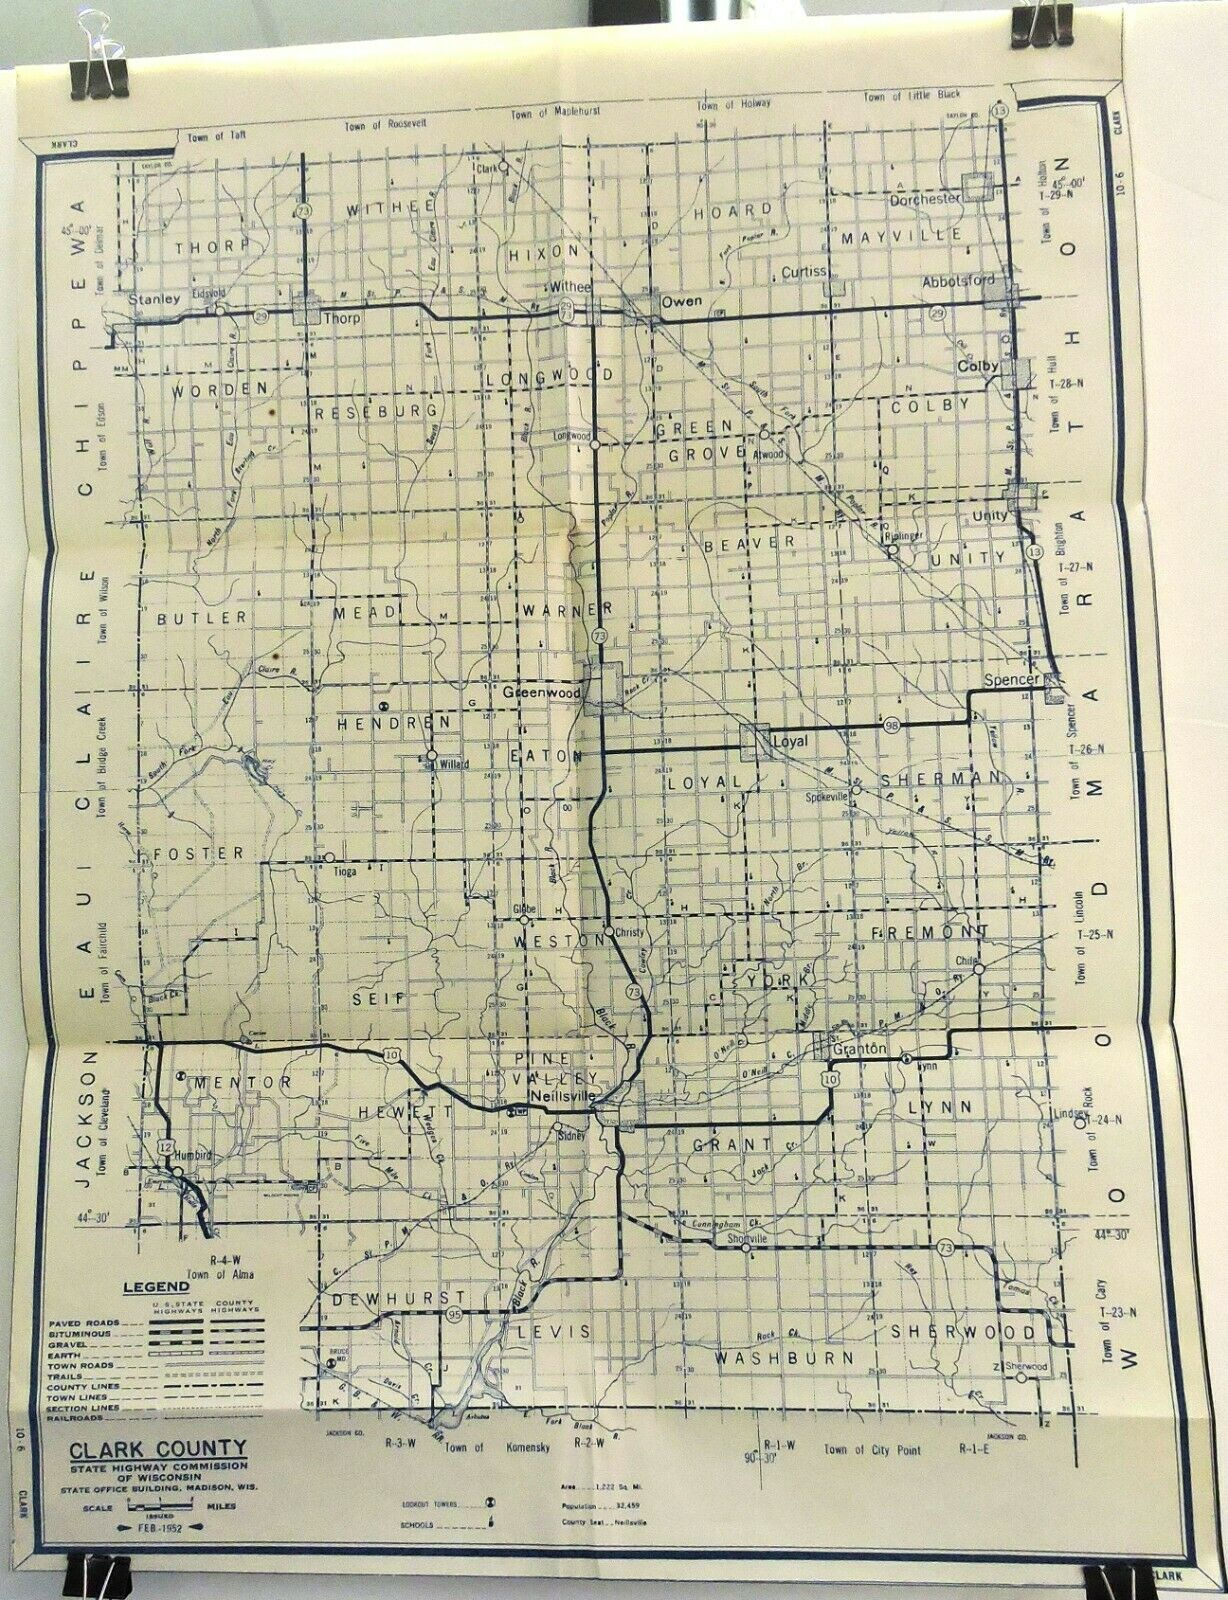 Clark County, Wisconsin 1952 State Highway Commission 25 X 19 Map. - $9.95